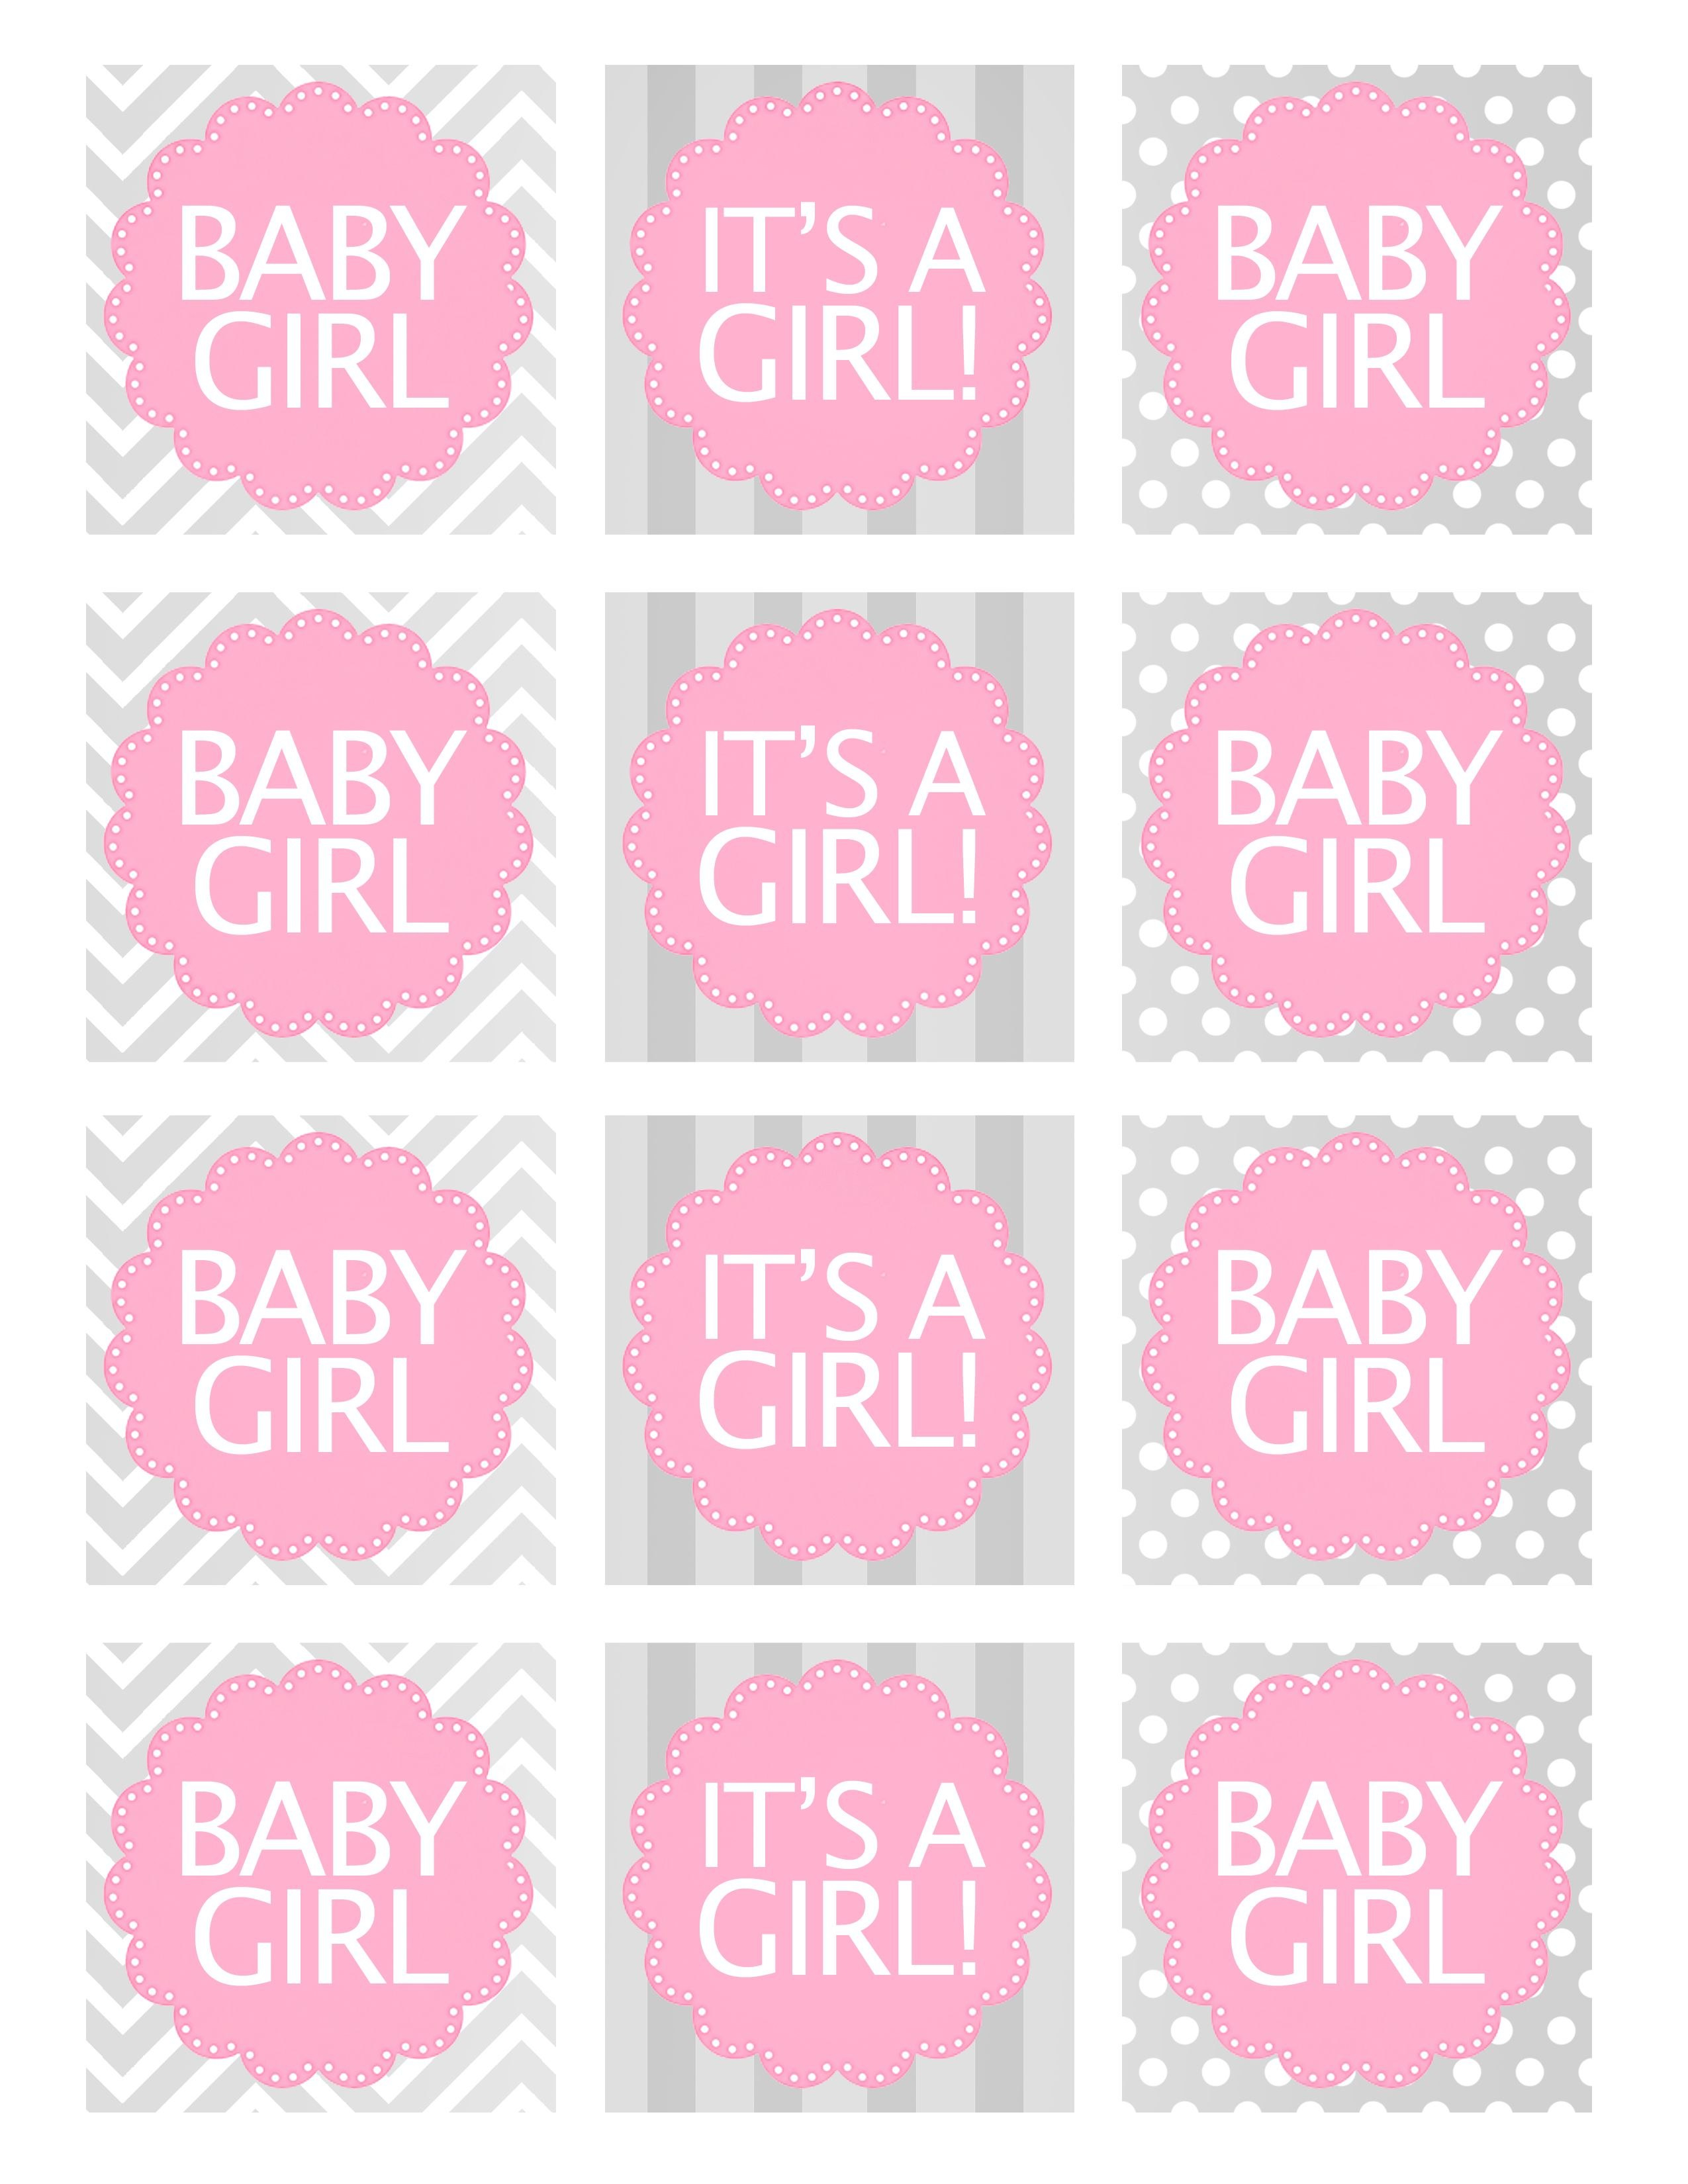 Baby Girl Shower Free Printables  Baby Shower Ideas  Free Baby In Baby Shower Label Template For Favors